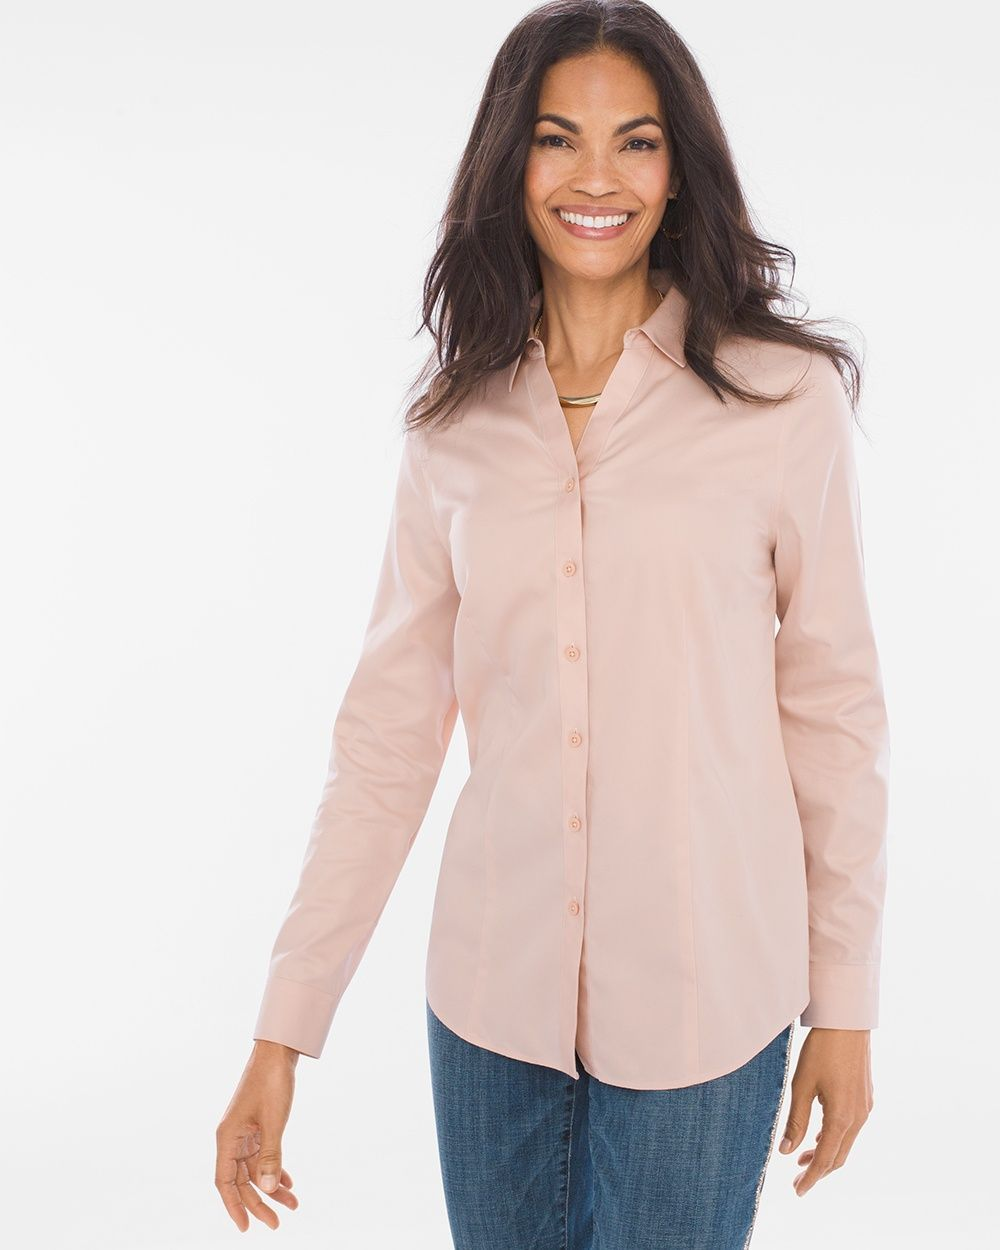 Sateen Caroline Shirt Products Travel Shirts Paris